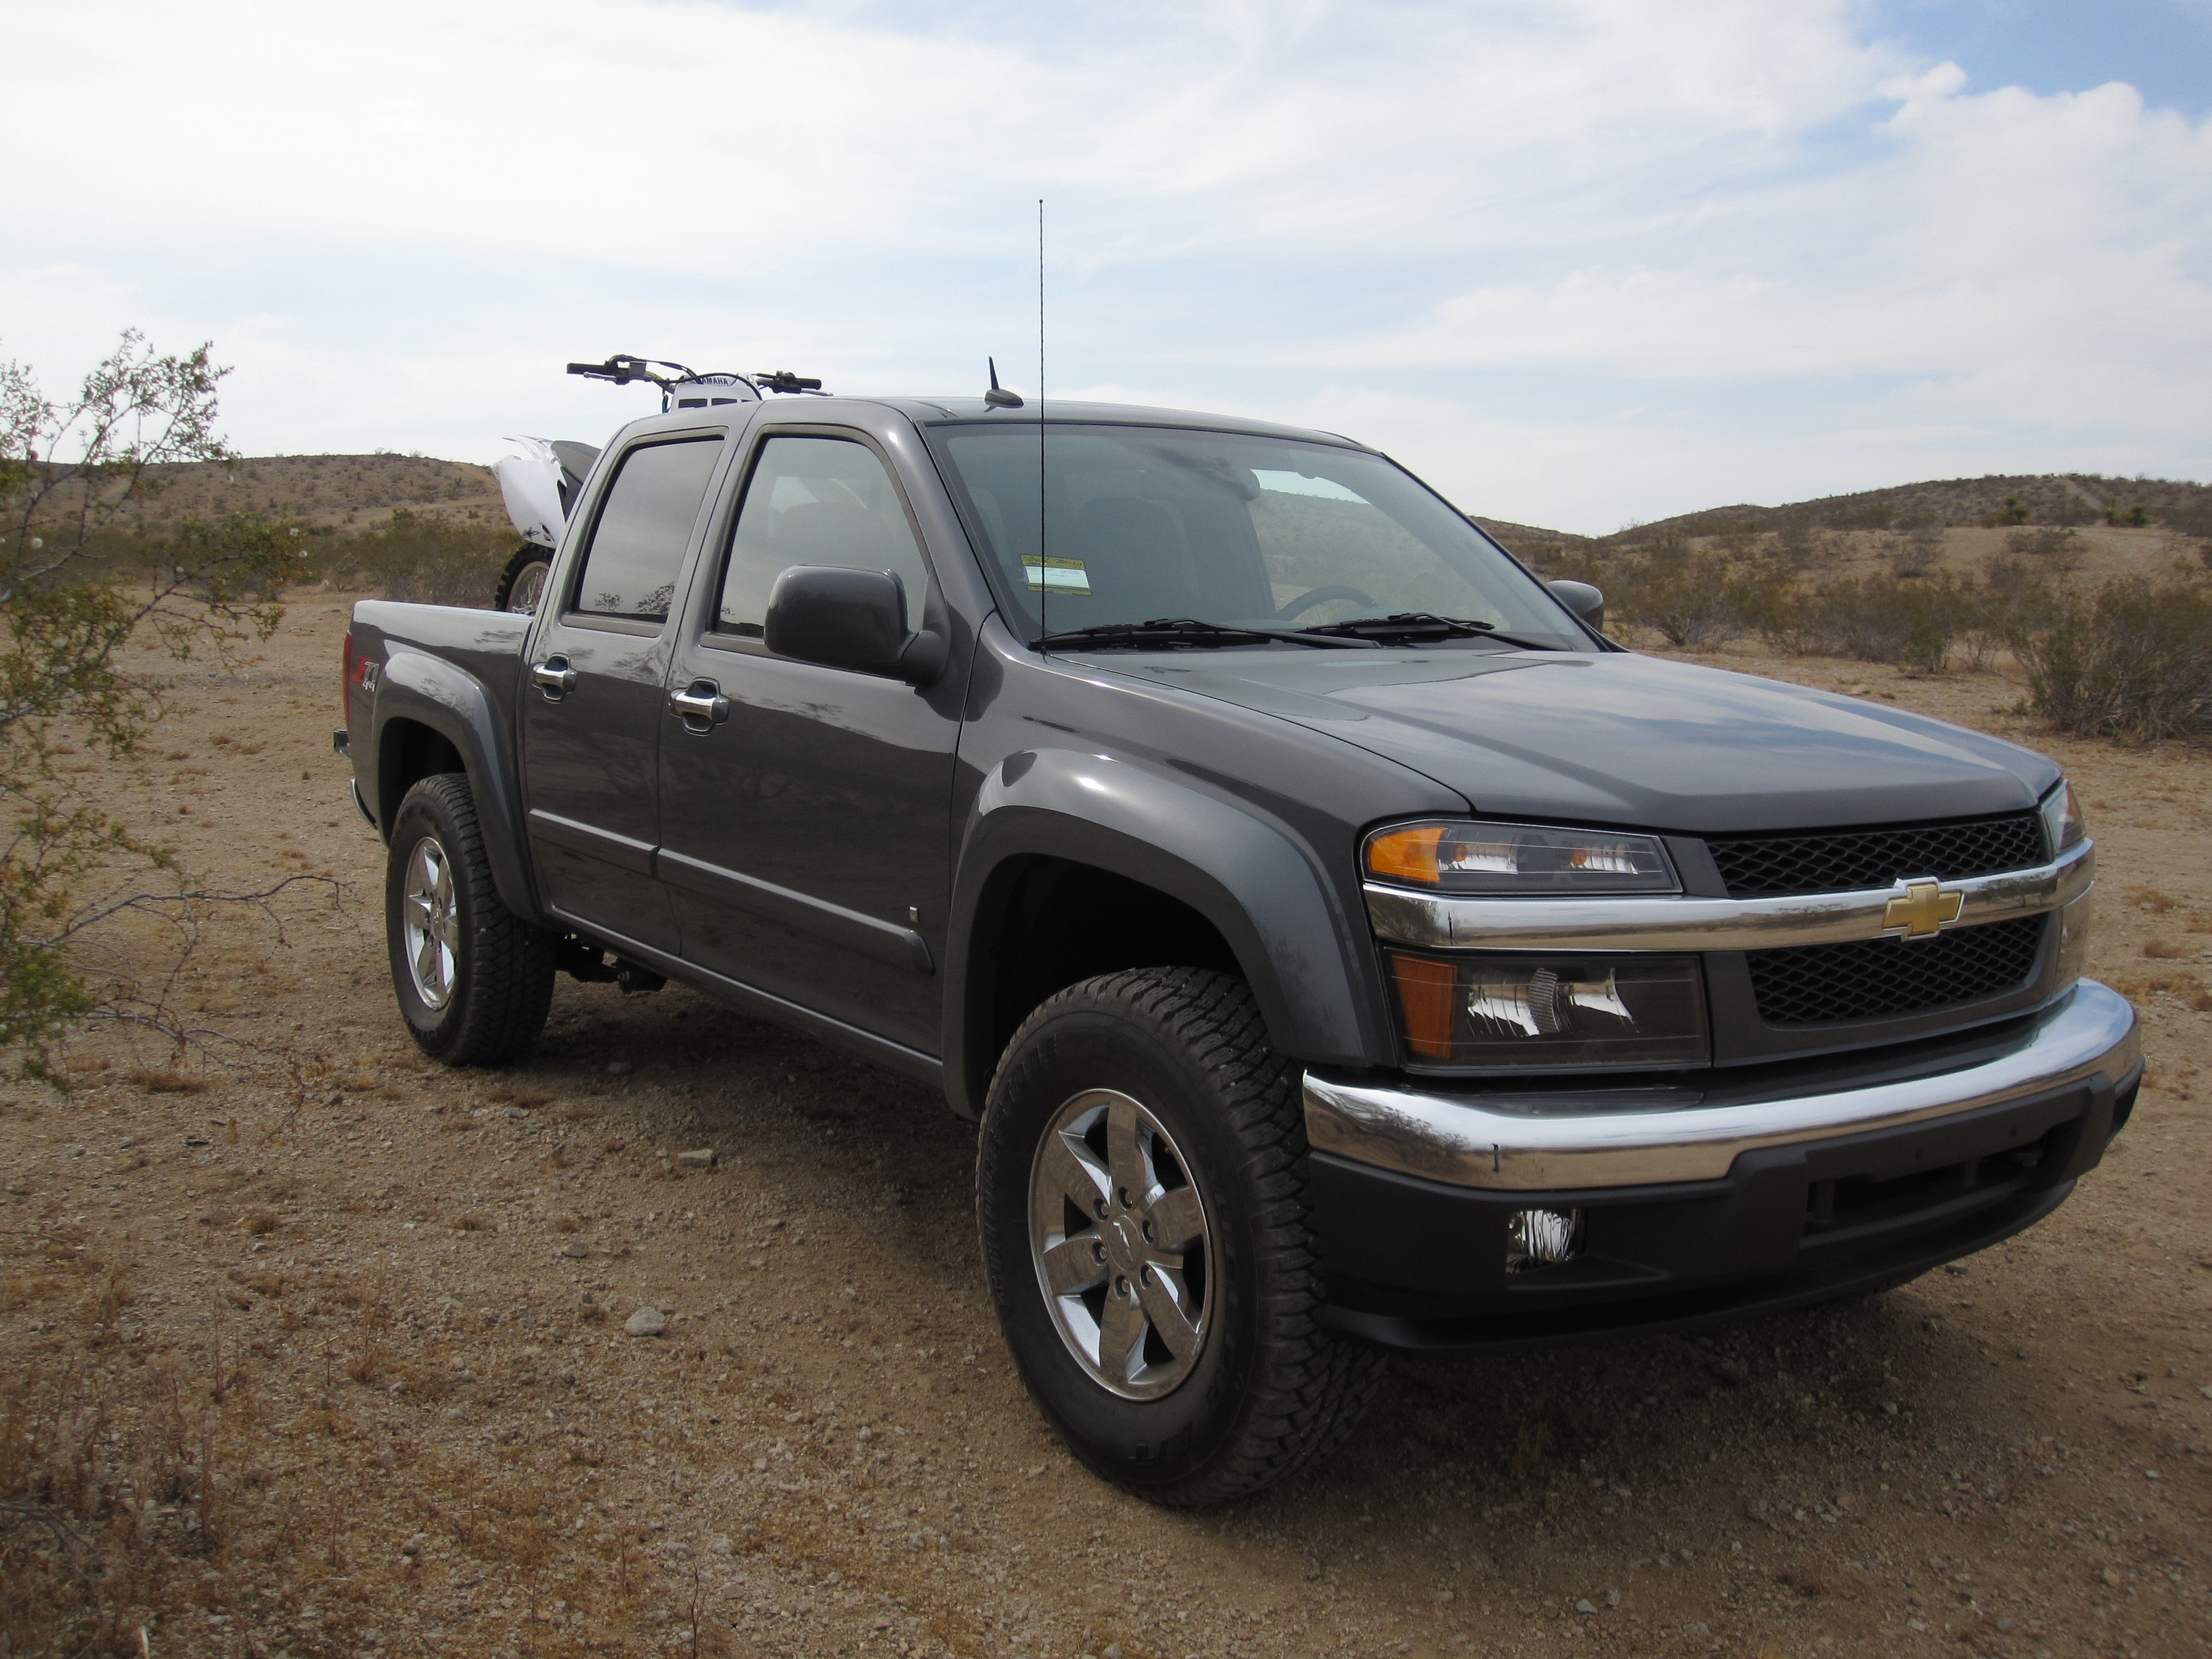 dakotalex 2009 chevrolet colorado crew cab specs photos. Black Bedroom Furniture Sets. Home Design Ideas